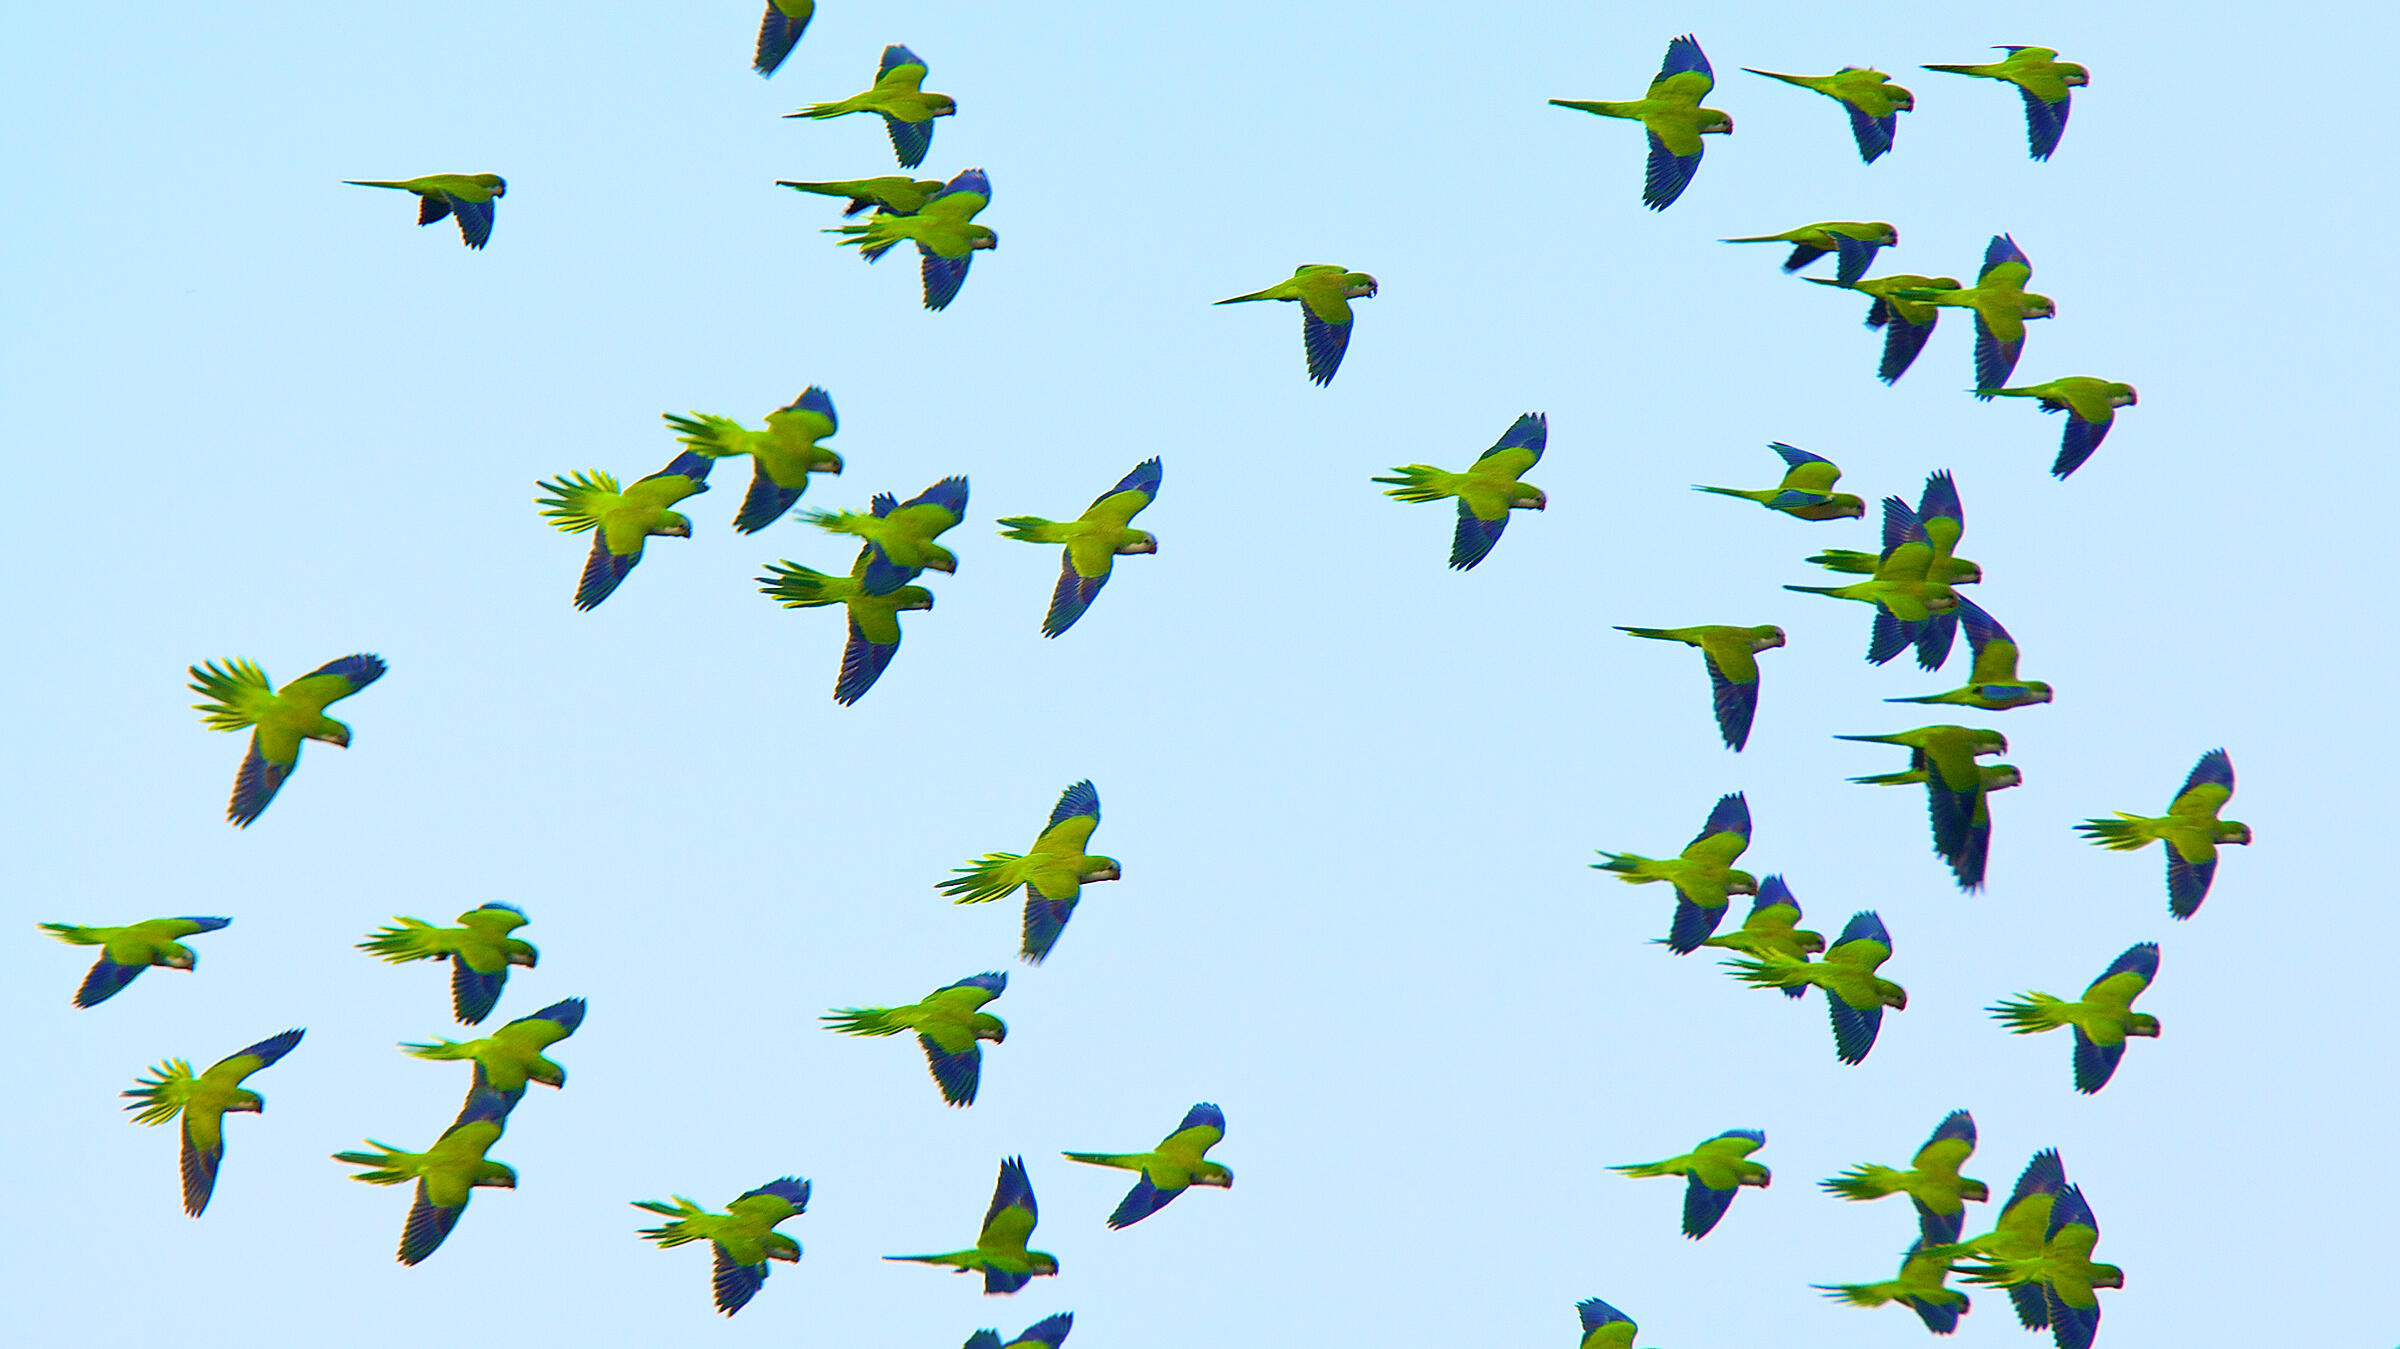 Monk Parakeets know their way around their flock by learning other birds' ranks. Steve Winter/National Geographic Creative